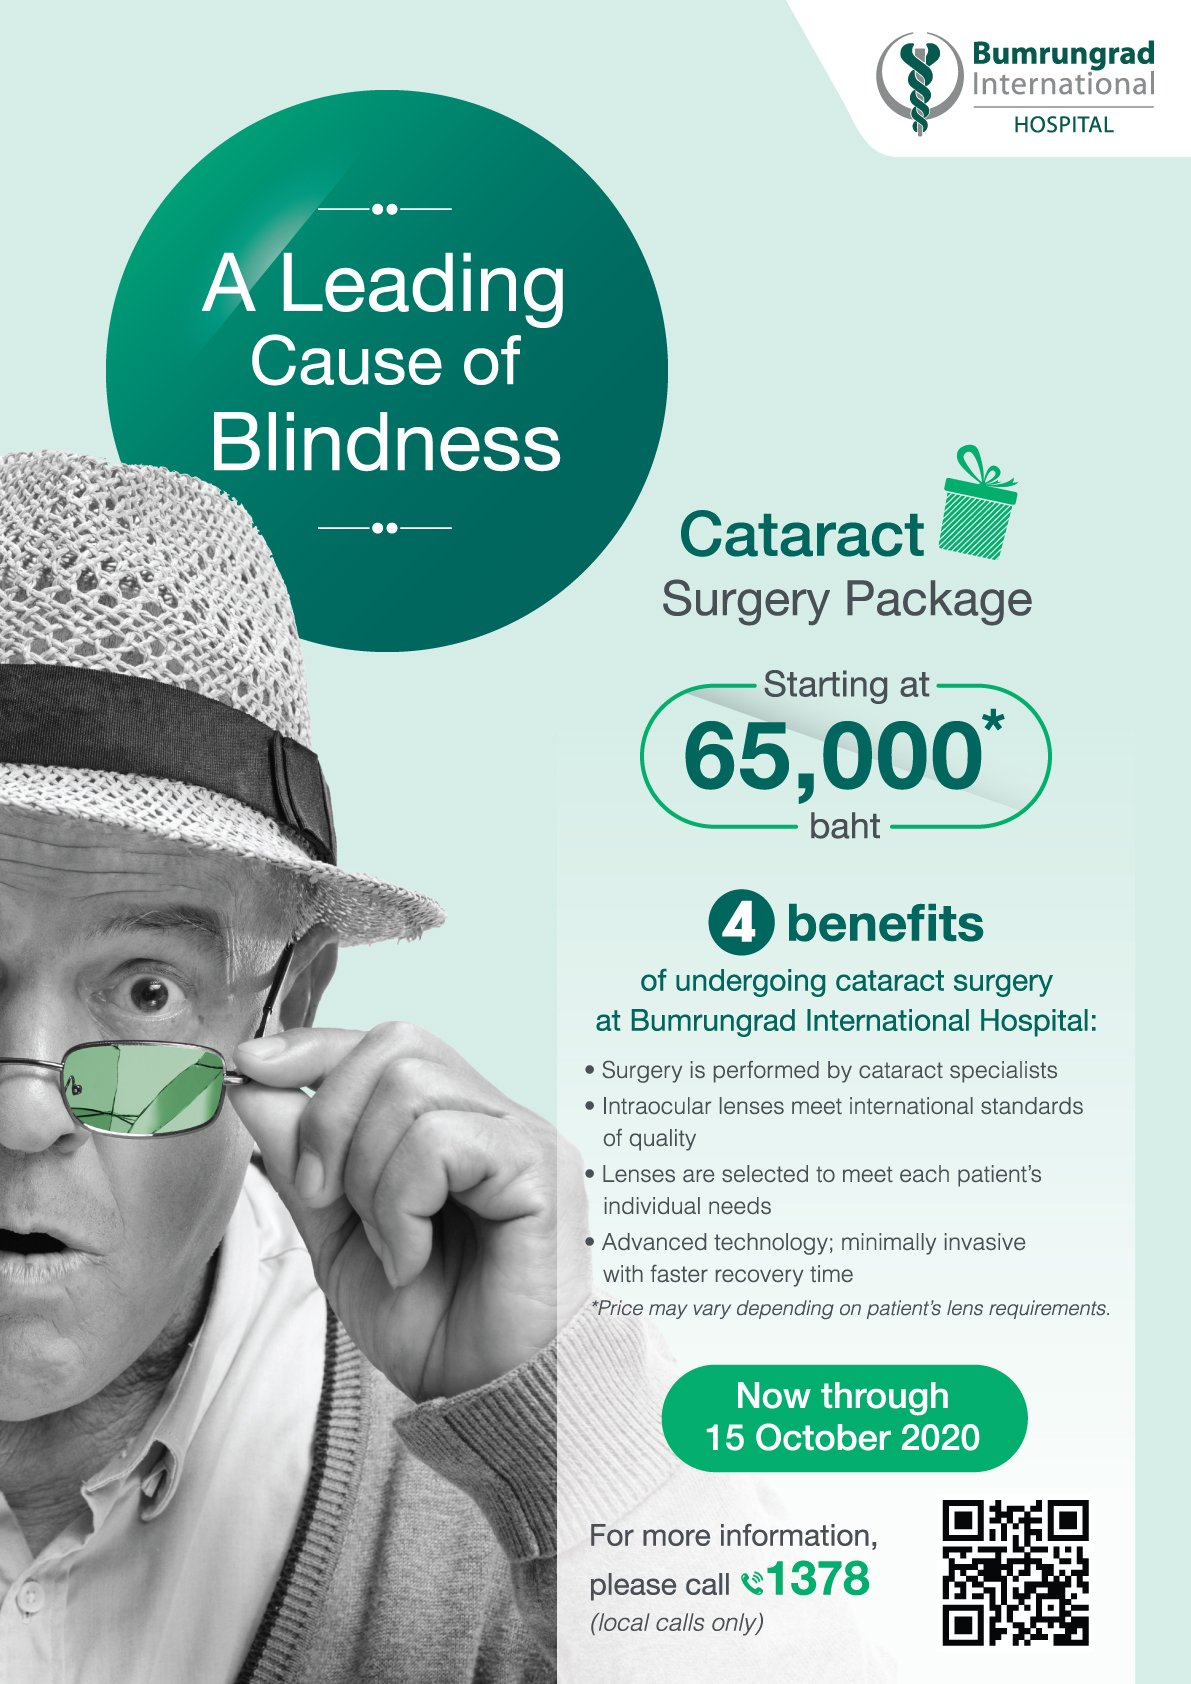 Cataract-Surgery-Package-EN.jpg